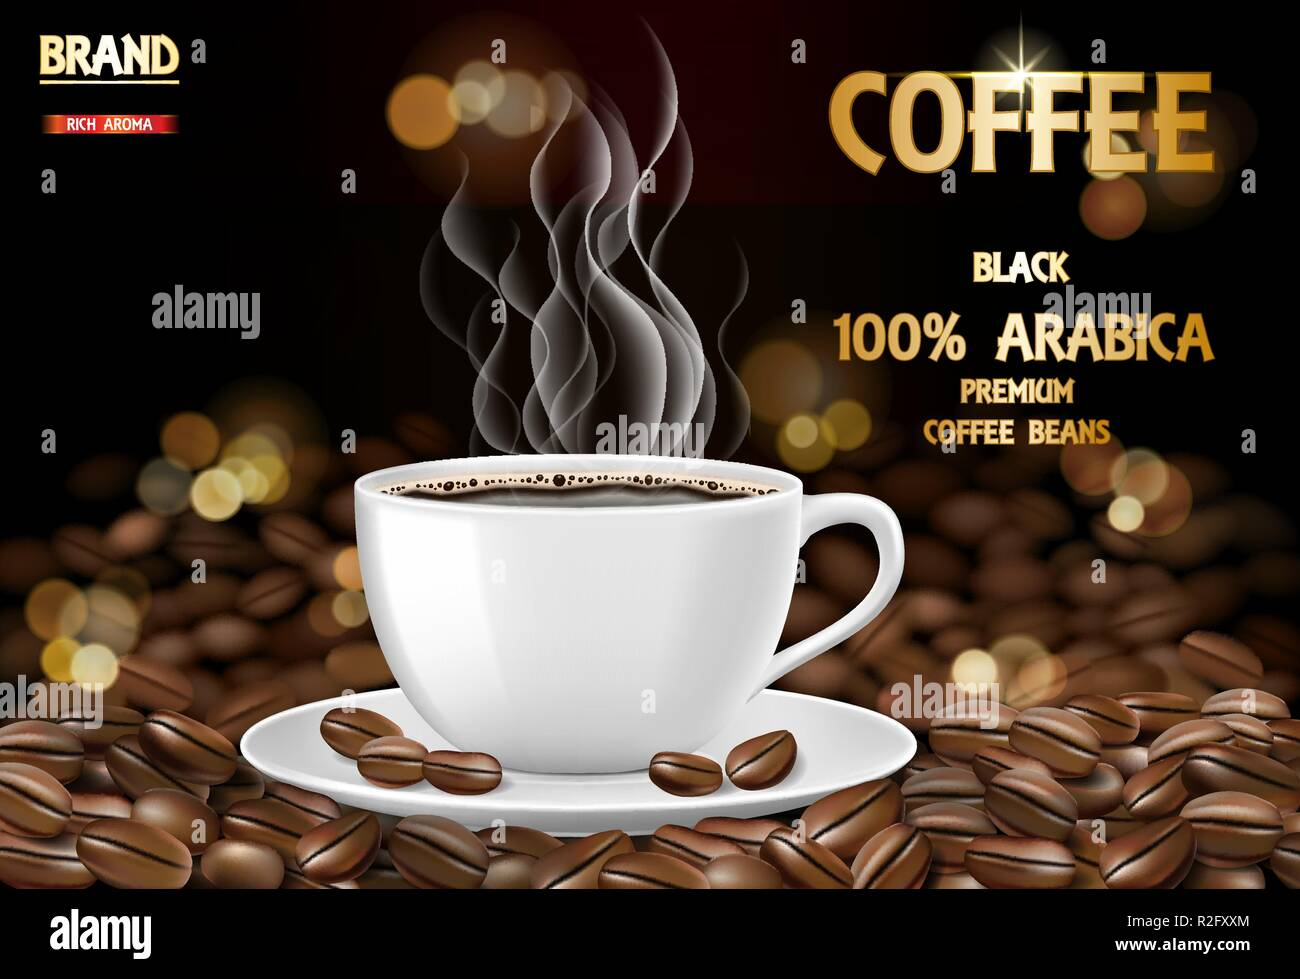 Arabica coffee cup with smoke and beans ads. 3d illustration of hot arabica coffee mug. Product package design background. Vector Stock Vector